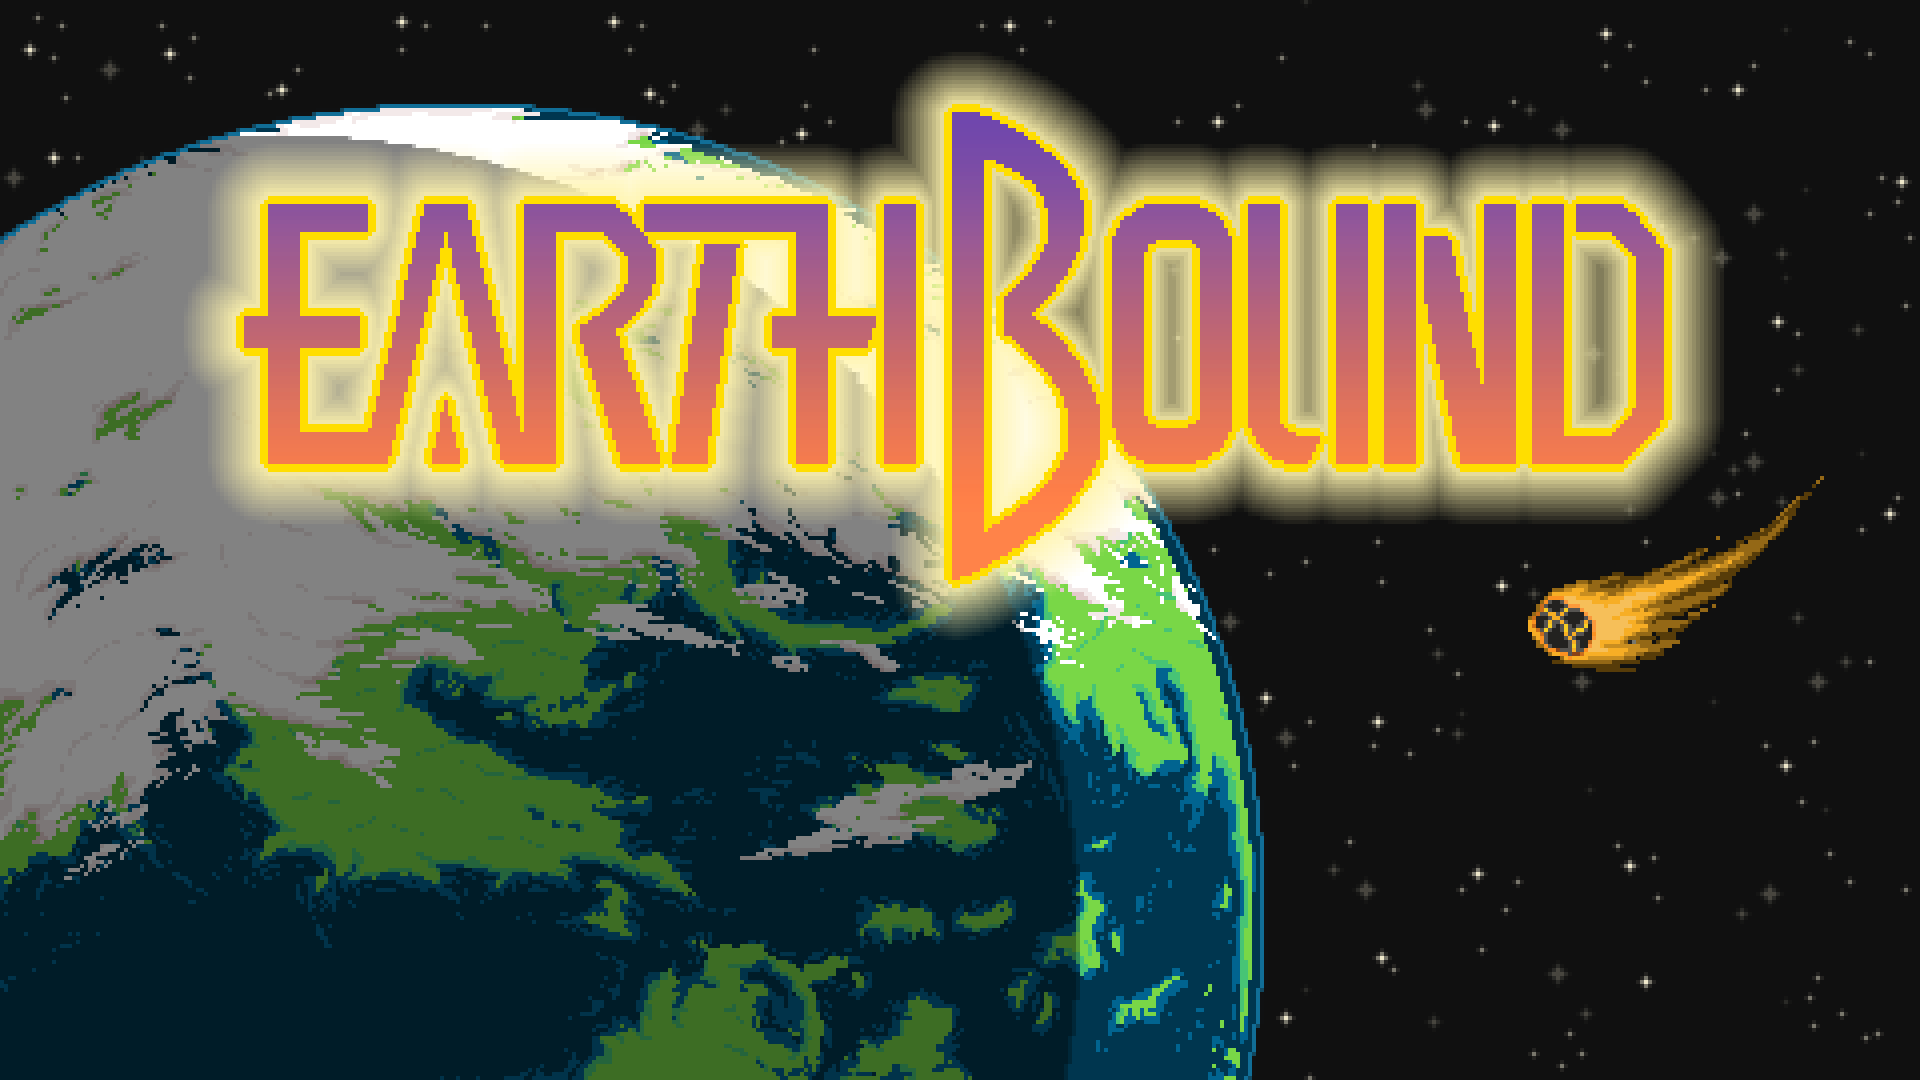 Here's a Earthbound wallpaper tribute I did  Enjoy  | Video